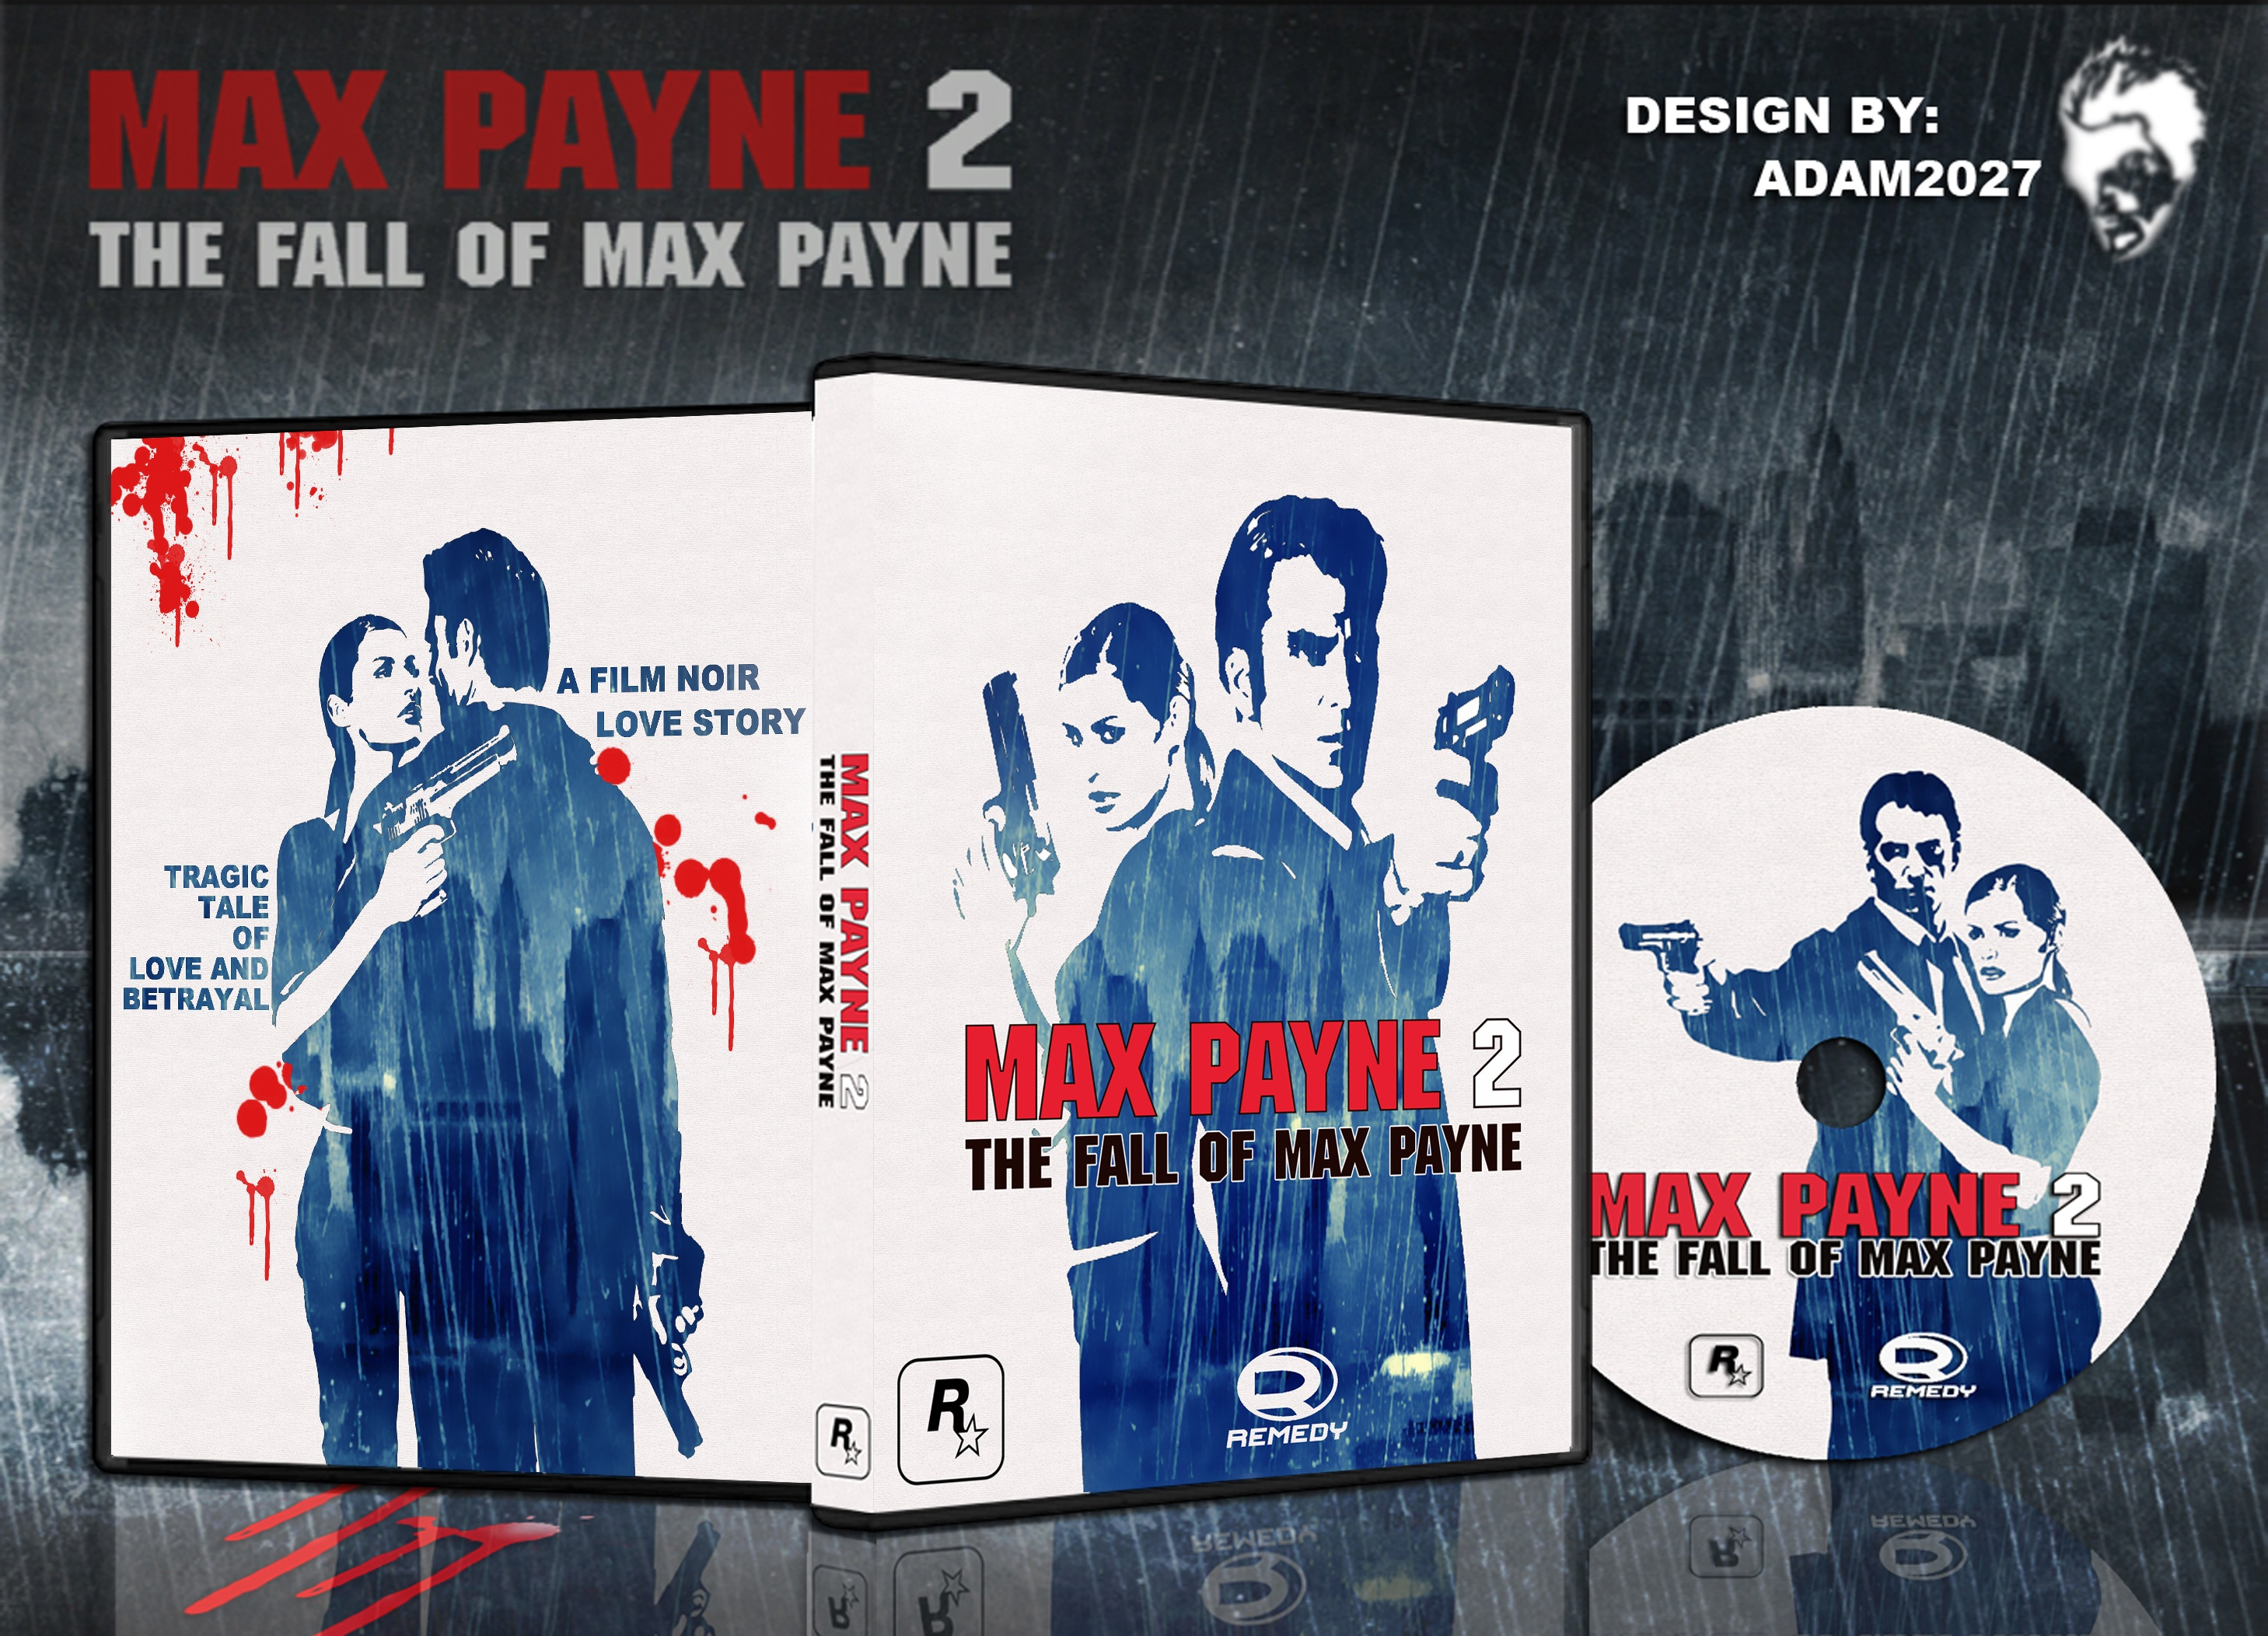 Max Payne 2 The Fall Of Max Payne Pc Box Art Cover By Adam2027